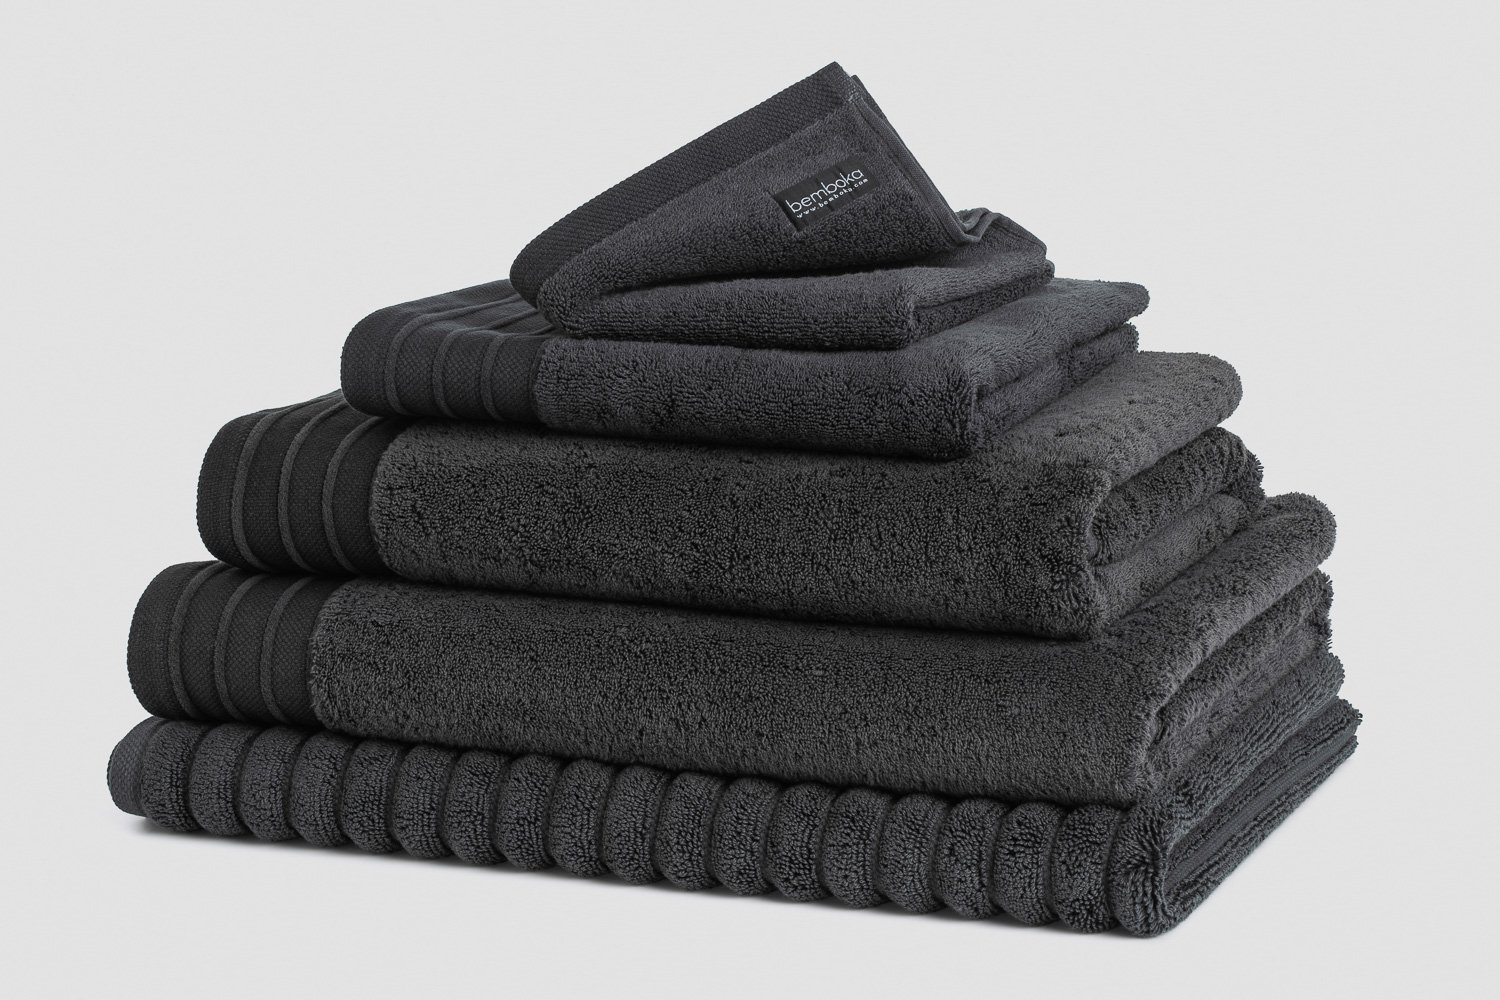 luxe bath towels in charcoal colour